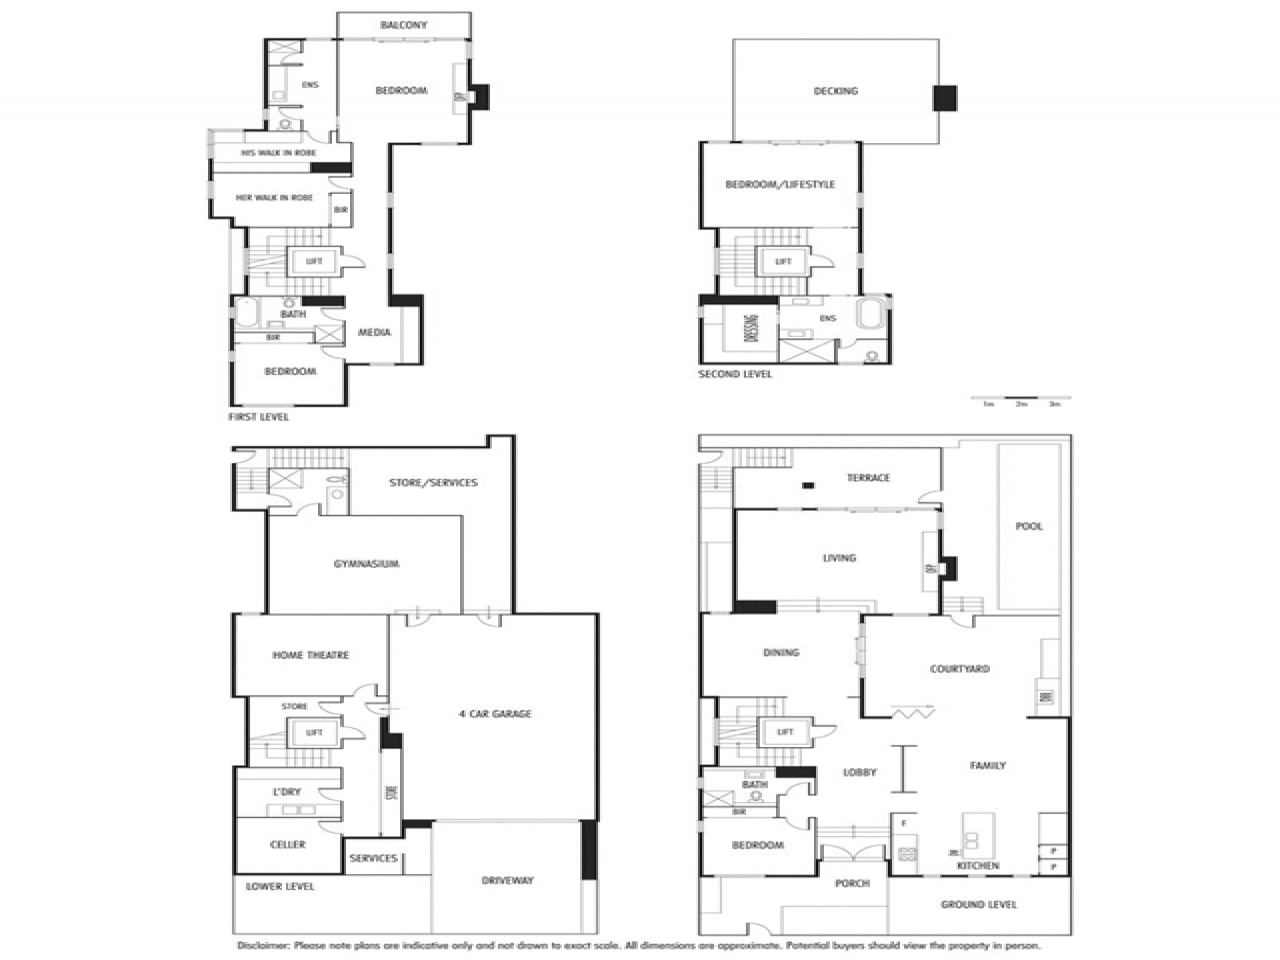 Waterfront house floor plans 4 bedroom economical house for Economical house plans